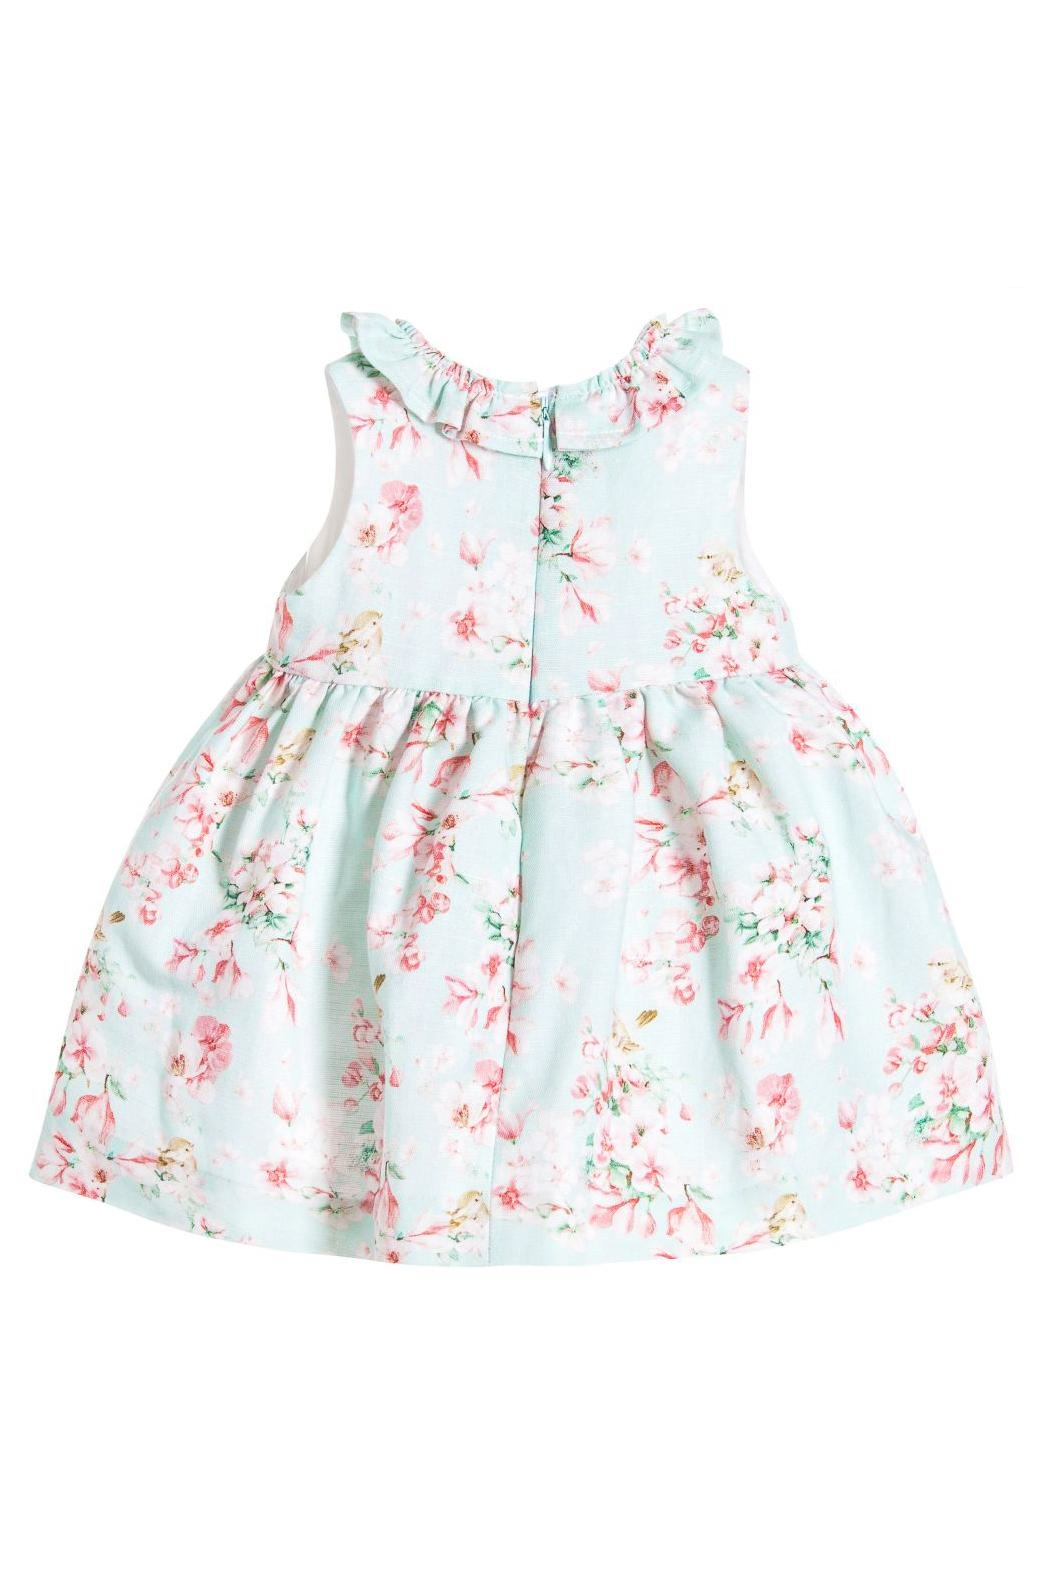 Mayoral Aqua Linen Floral-Dress - Front Full Image